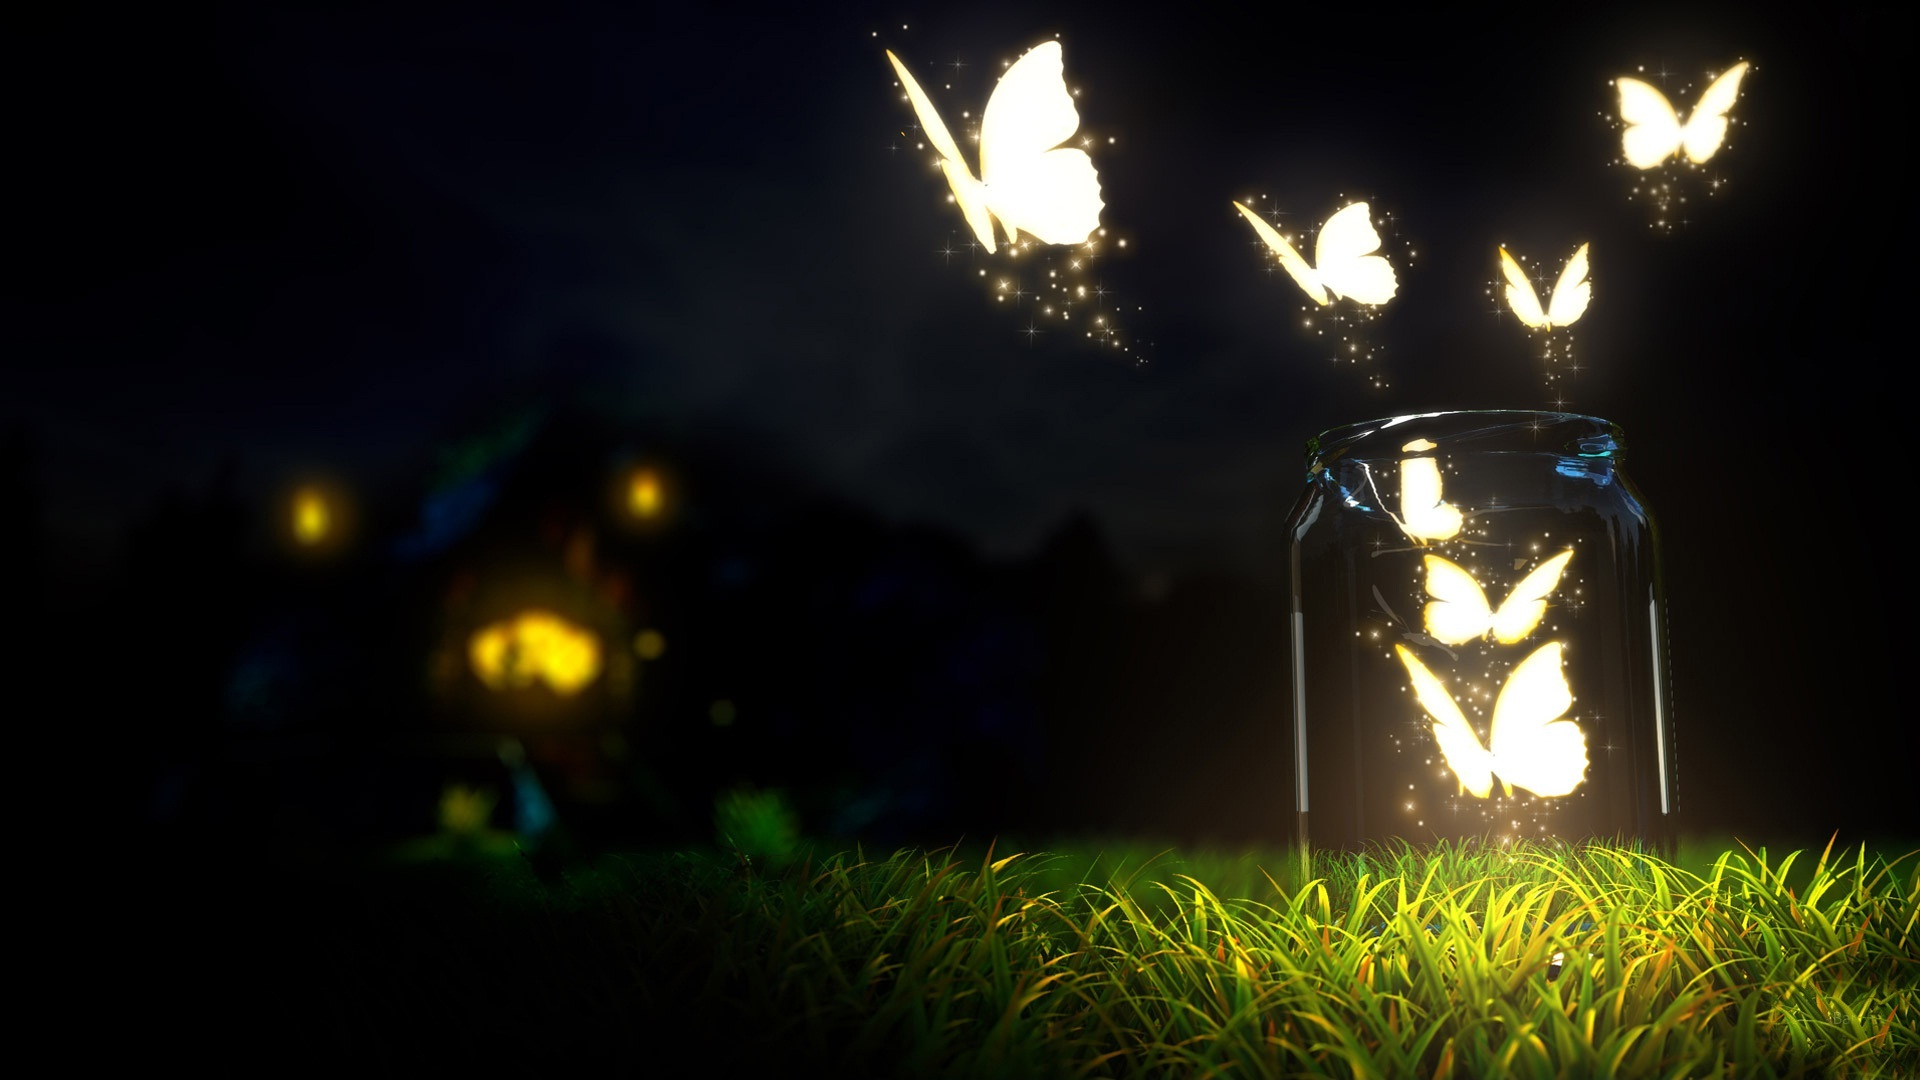 Illumination butterflies in night HD Wallpapers Rocks 1920x1080